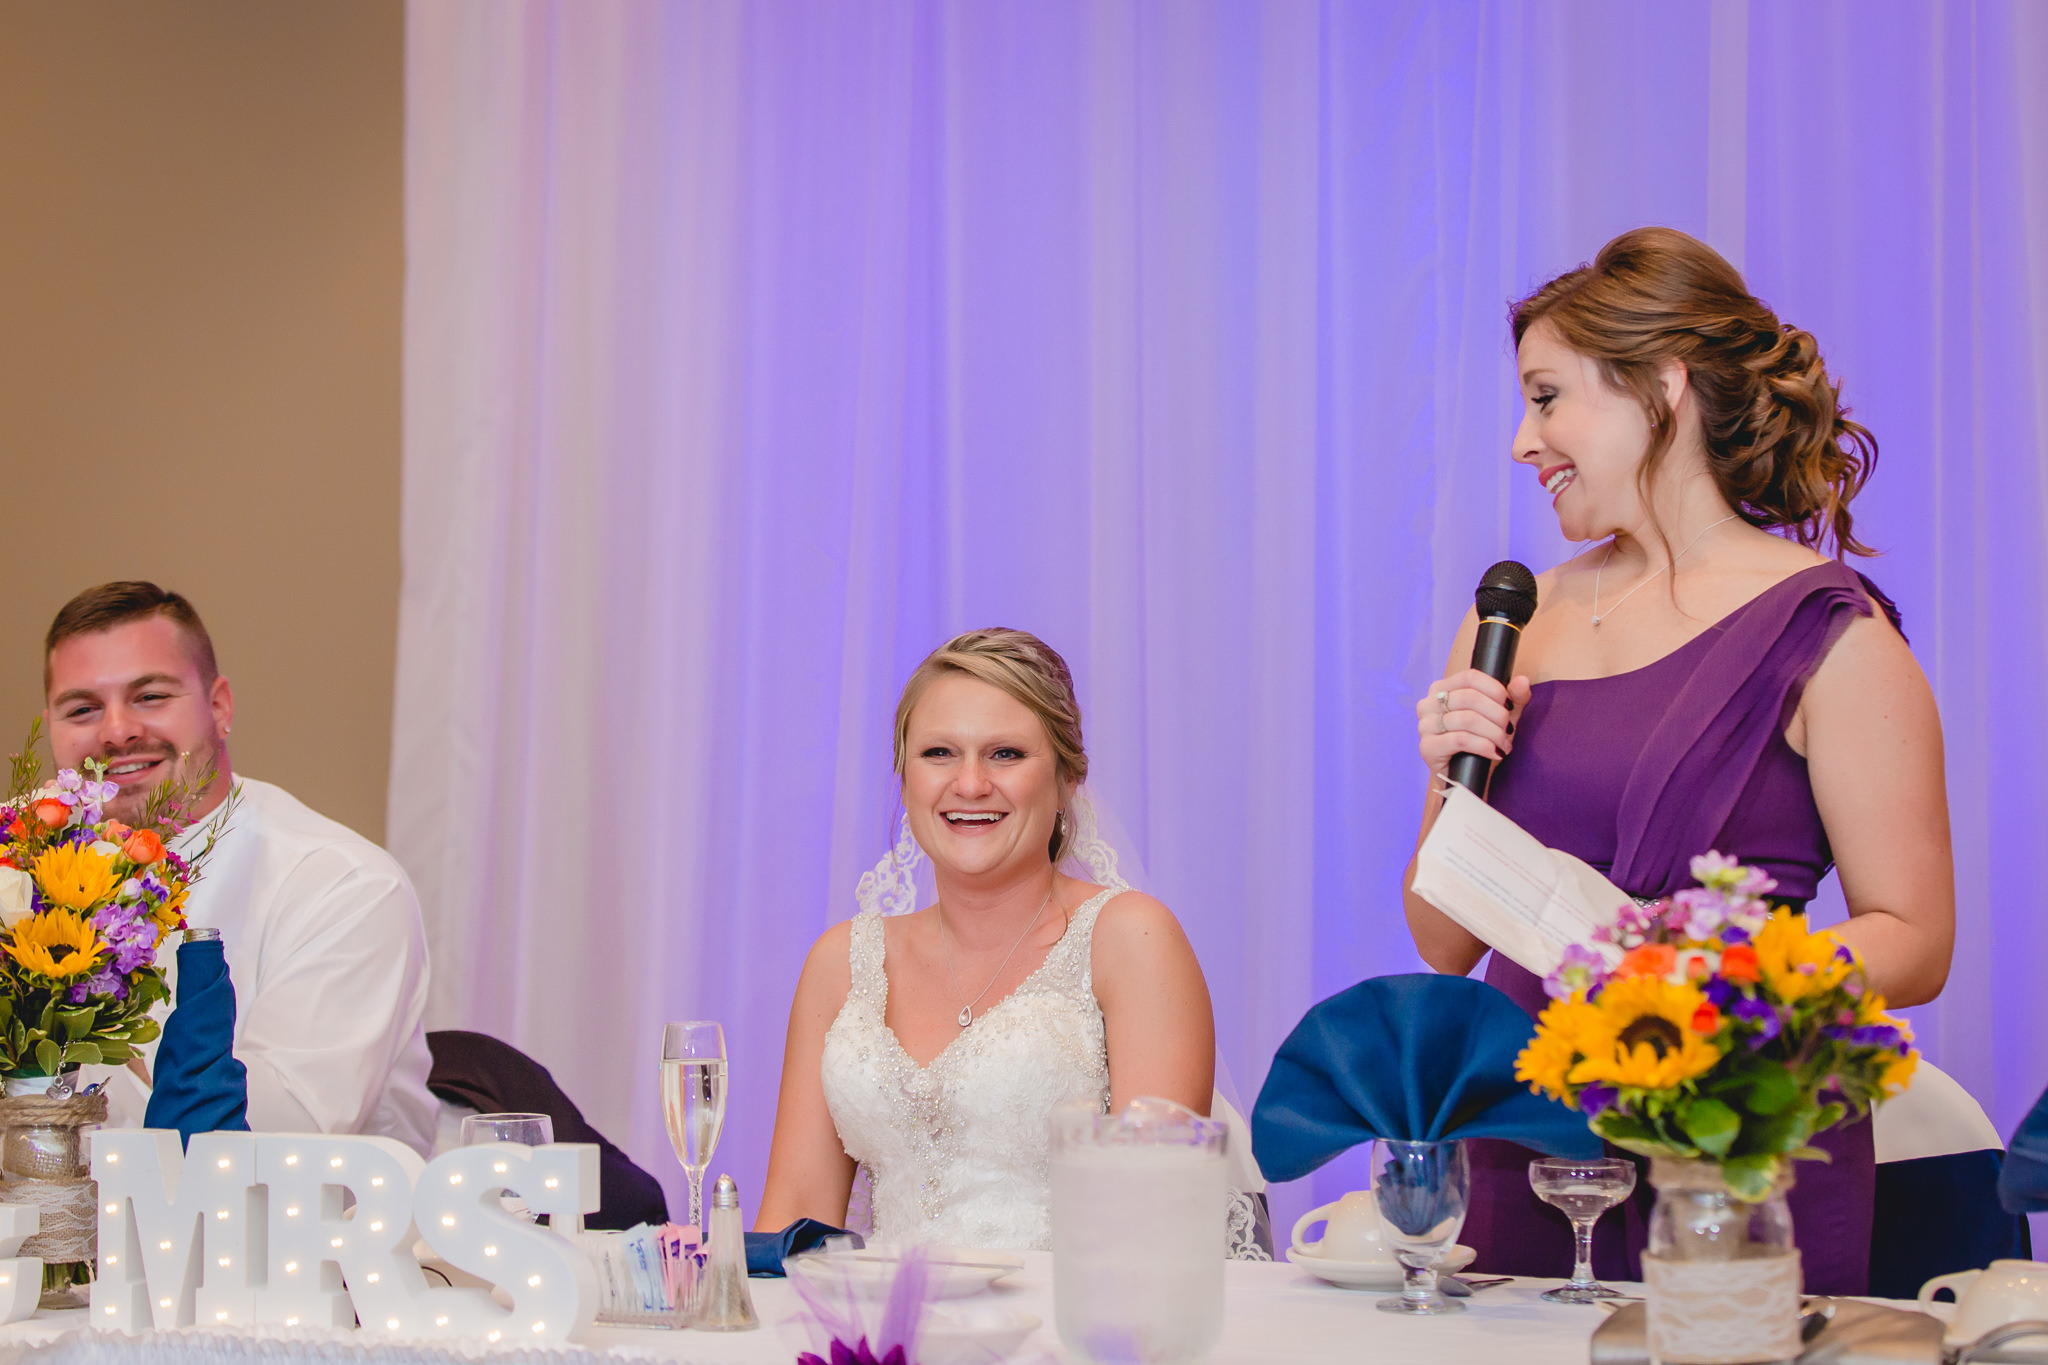 Maid of honor toasts the bride and groom at their Fez wedding reception